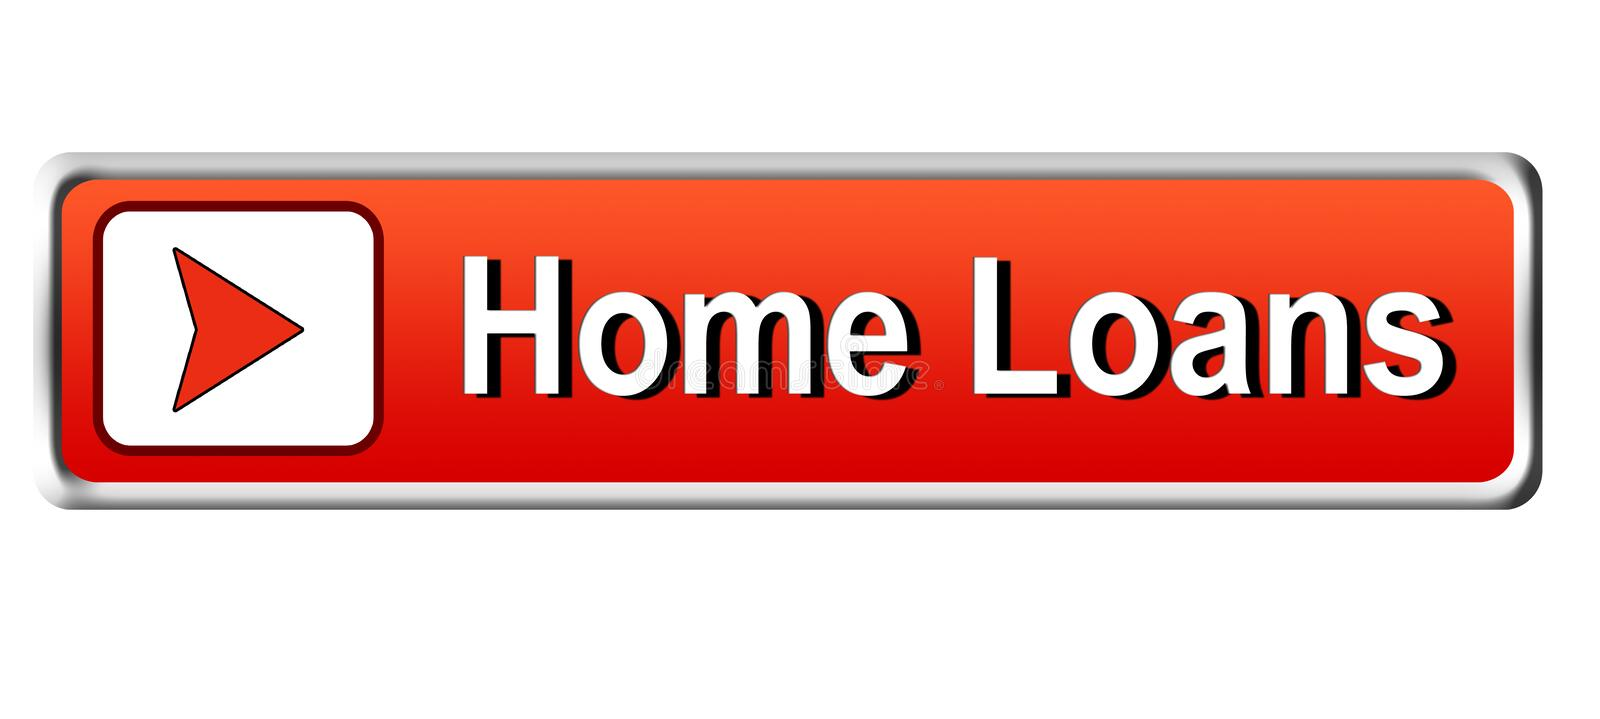 Home Loans square web button classic red button white background royalty free illustration